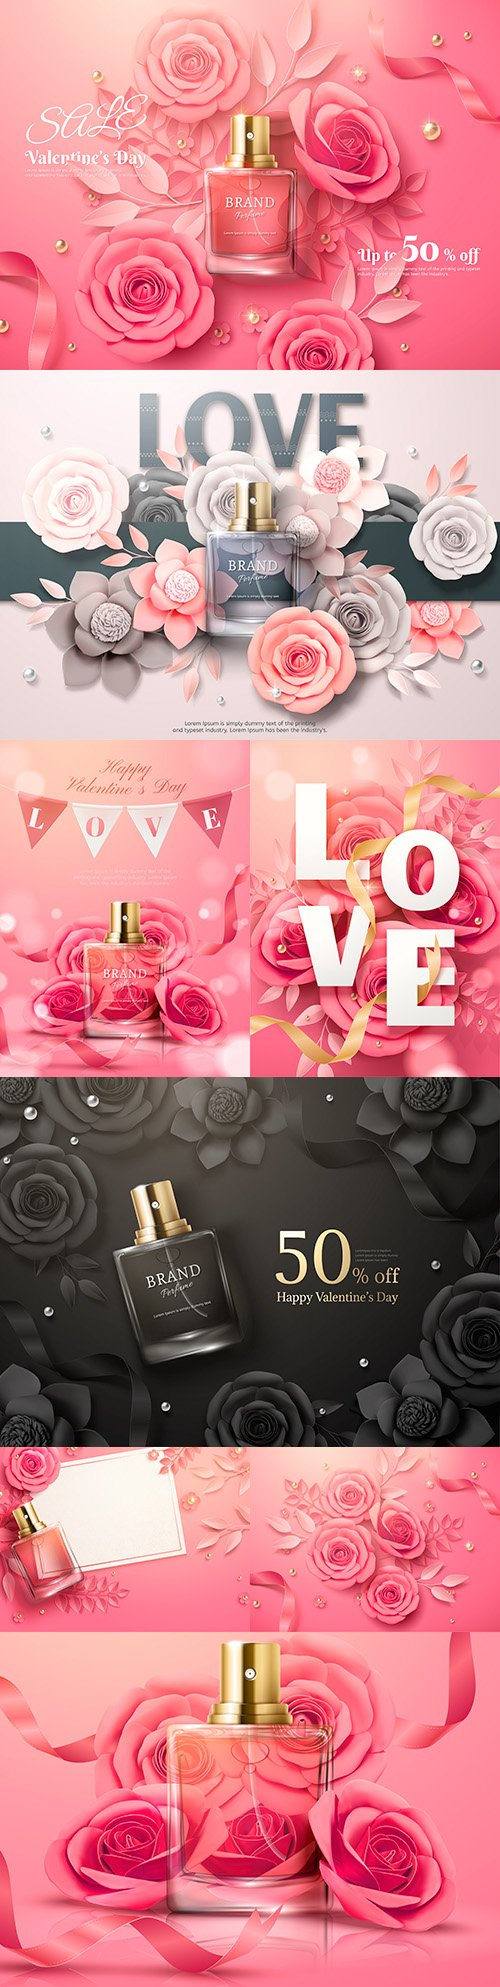 Perfume advertising with pink paper colors 3d illustrations